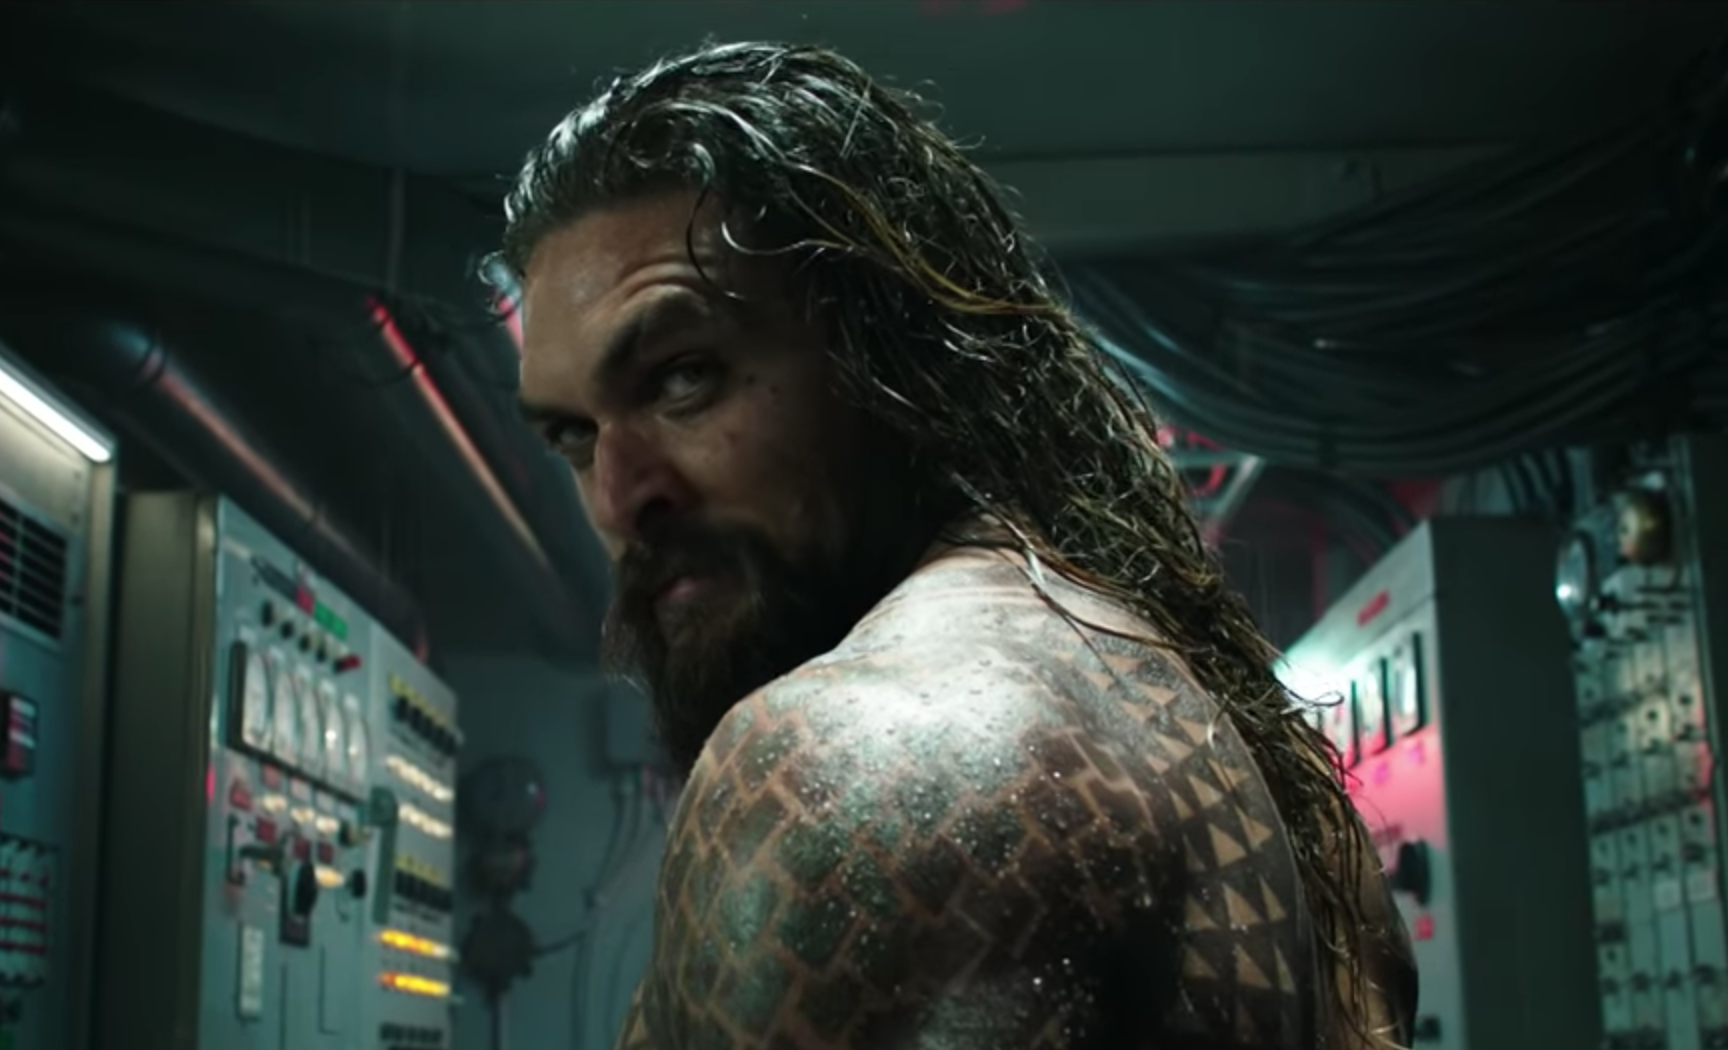 China Box Office: 'Aquaman' Sinks All Challengers With $94 Million Opening